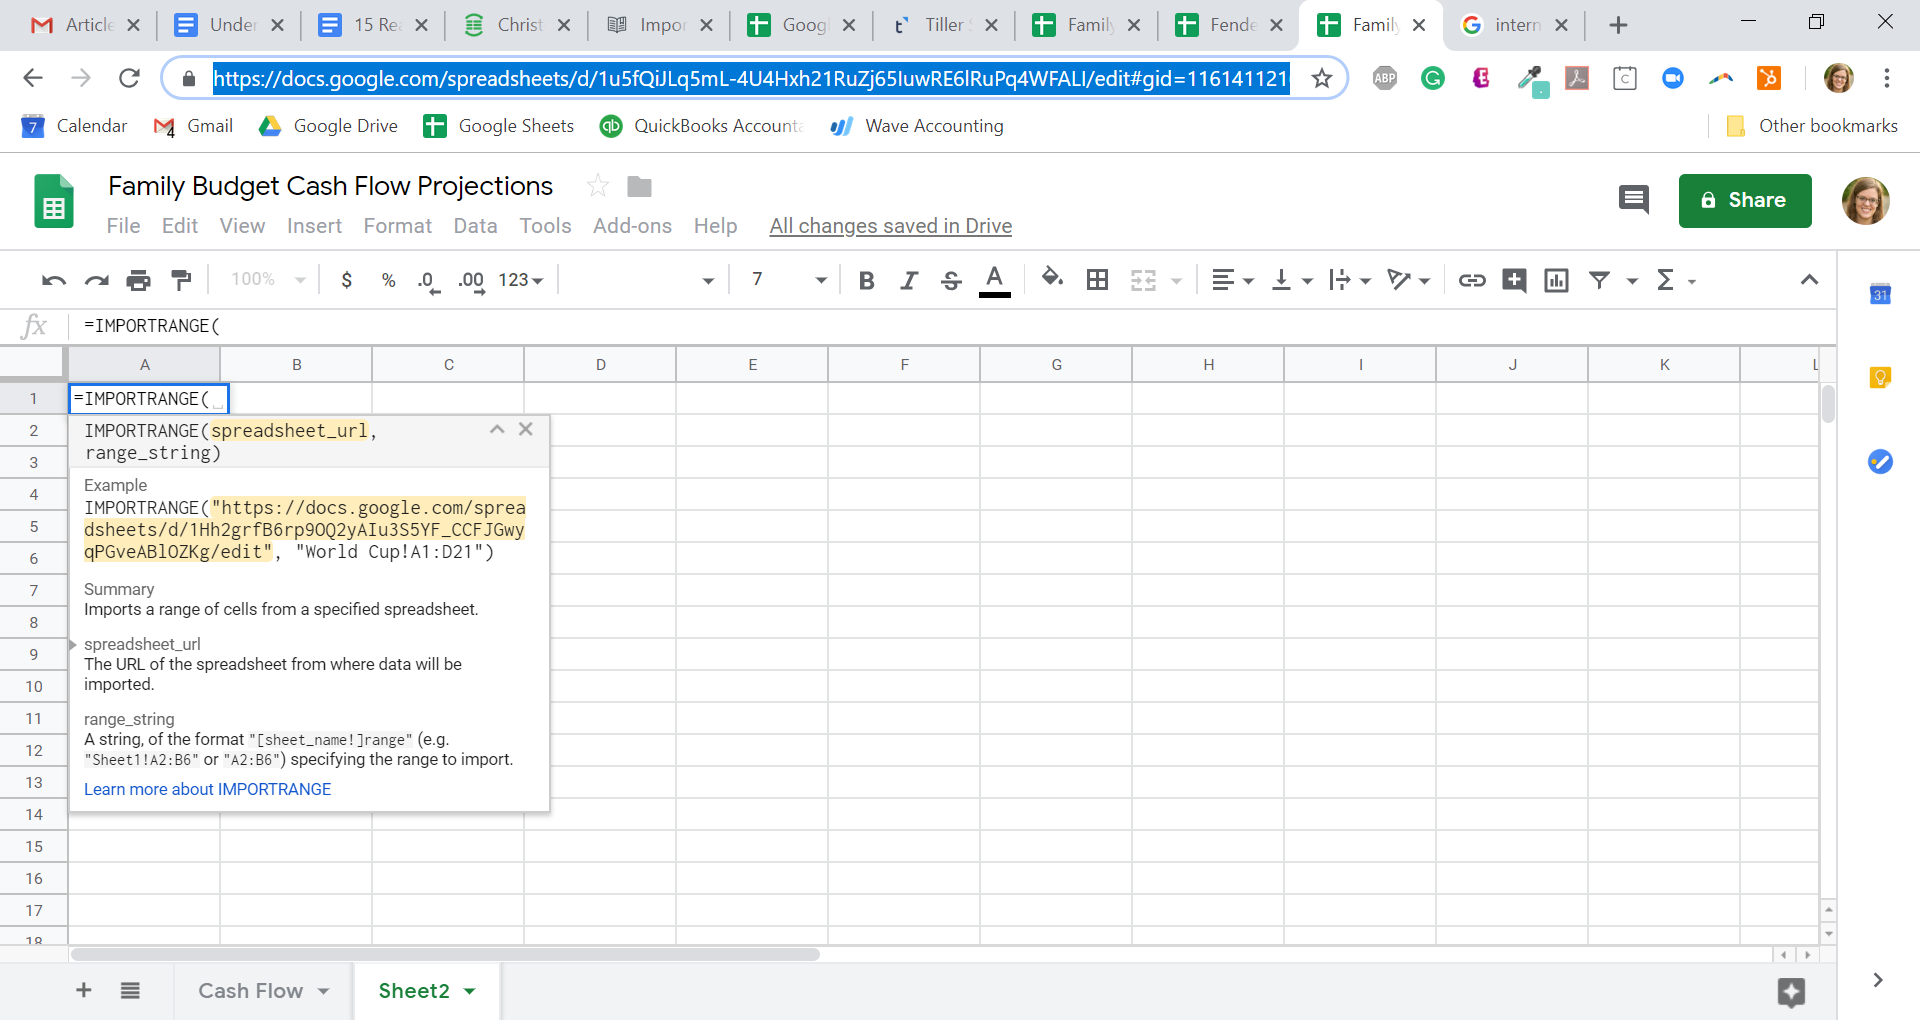 Full Size of Expenses Spreadsheet Catering Excel For Importrange Google Sheets